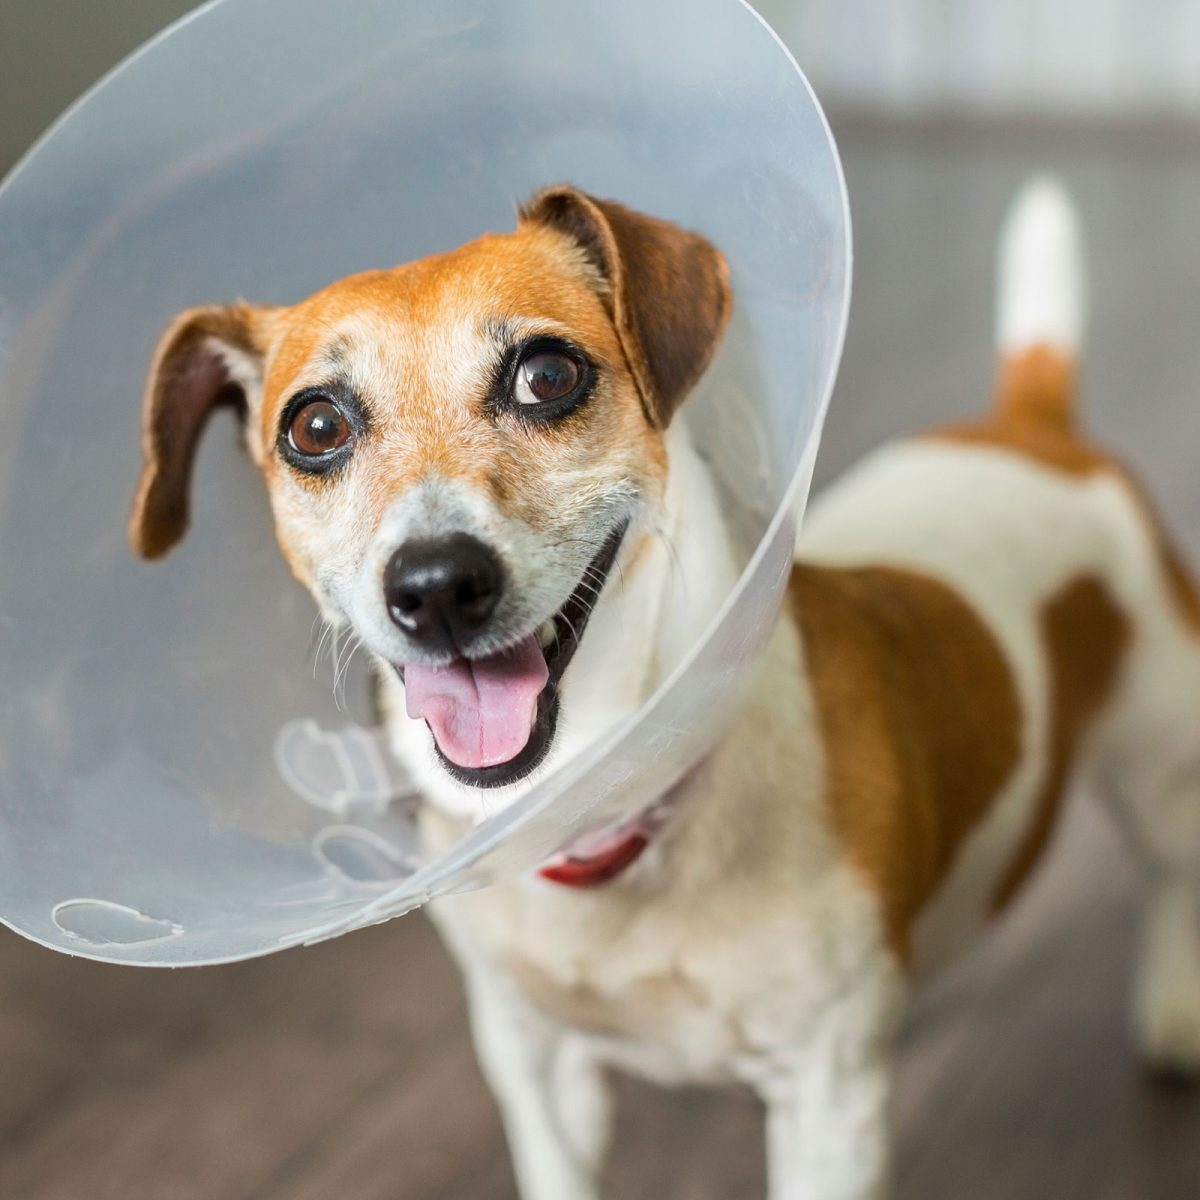 50 Things Your Veterinarian Won't Tell You | Reader's Digest